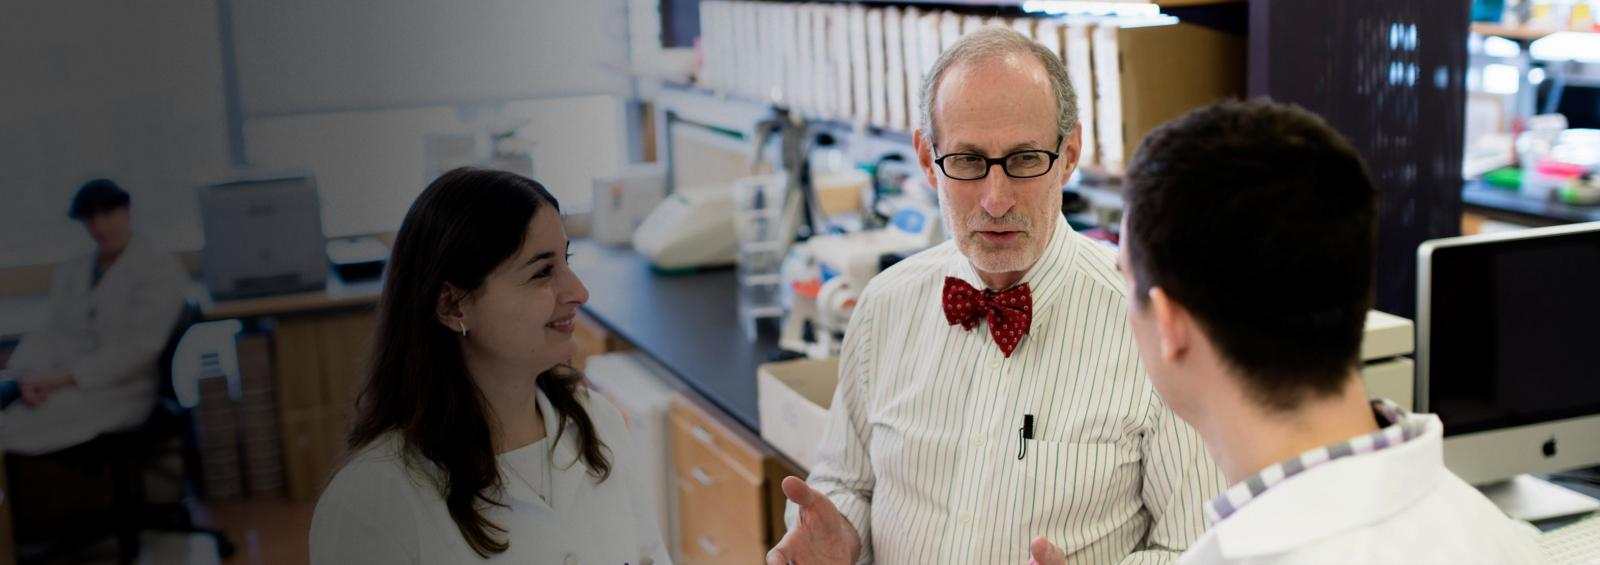 Dr. Jeffrey Weber and Students Chatting in Lab